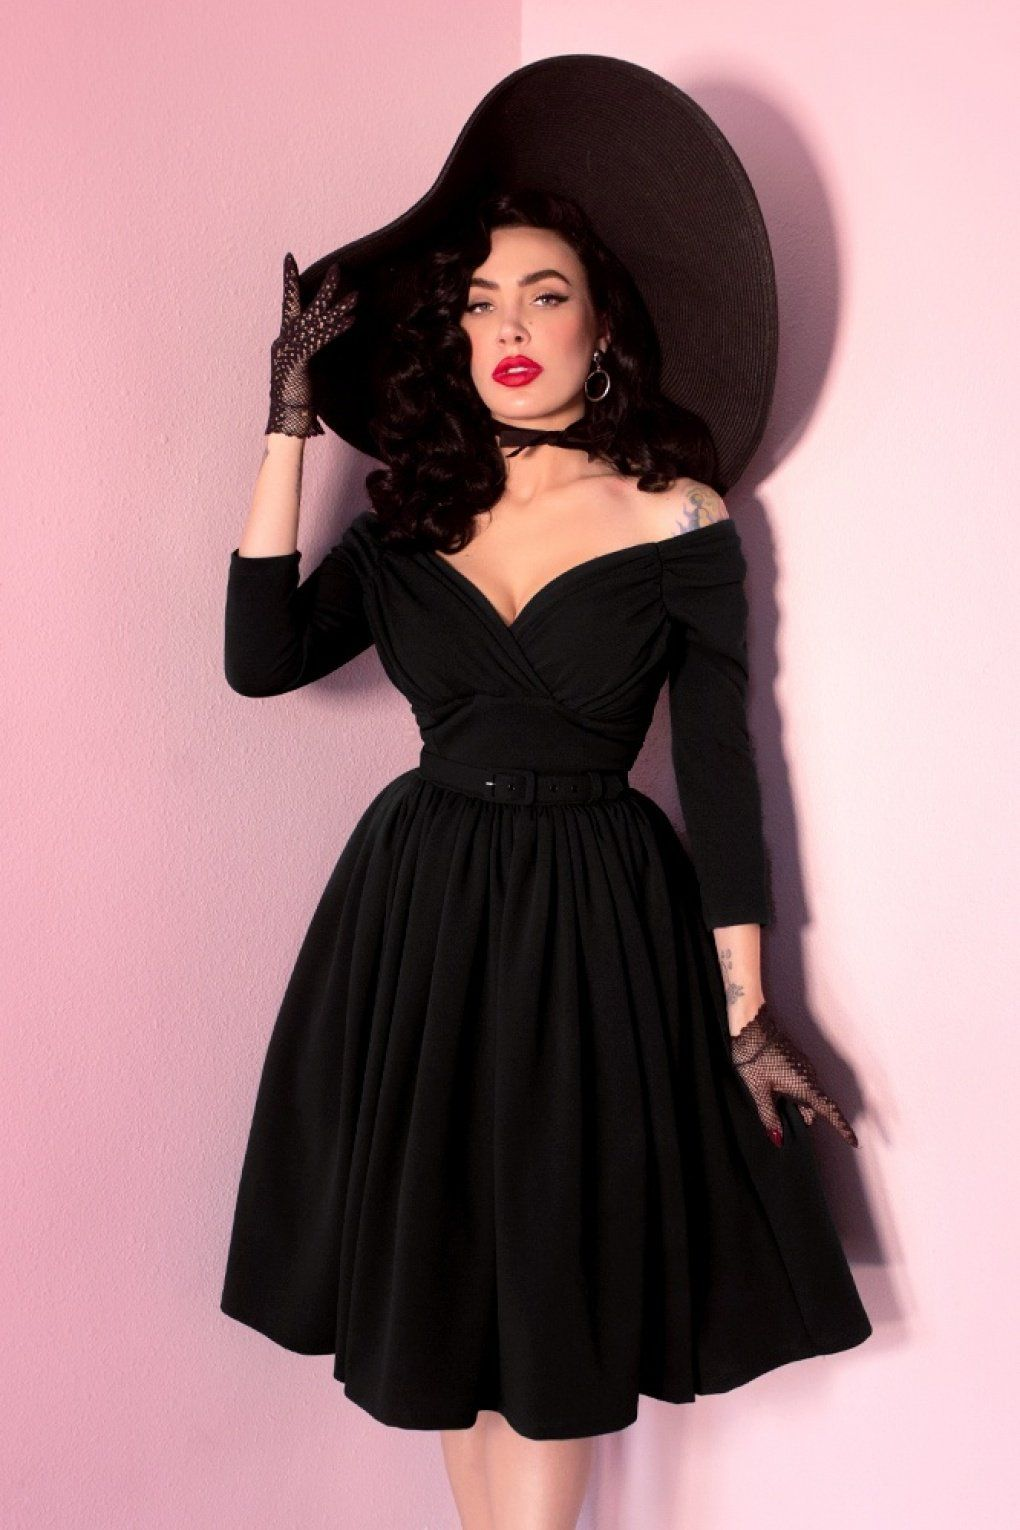 50s Starlet Swing Dress In Black Old Fashion Dresses Fashion Vintage Outfits [ 1530 x 1020 Pixel ]